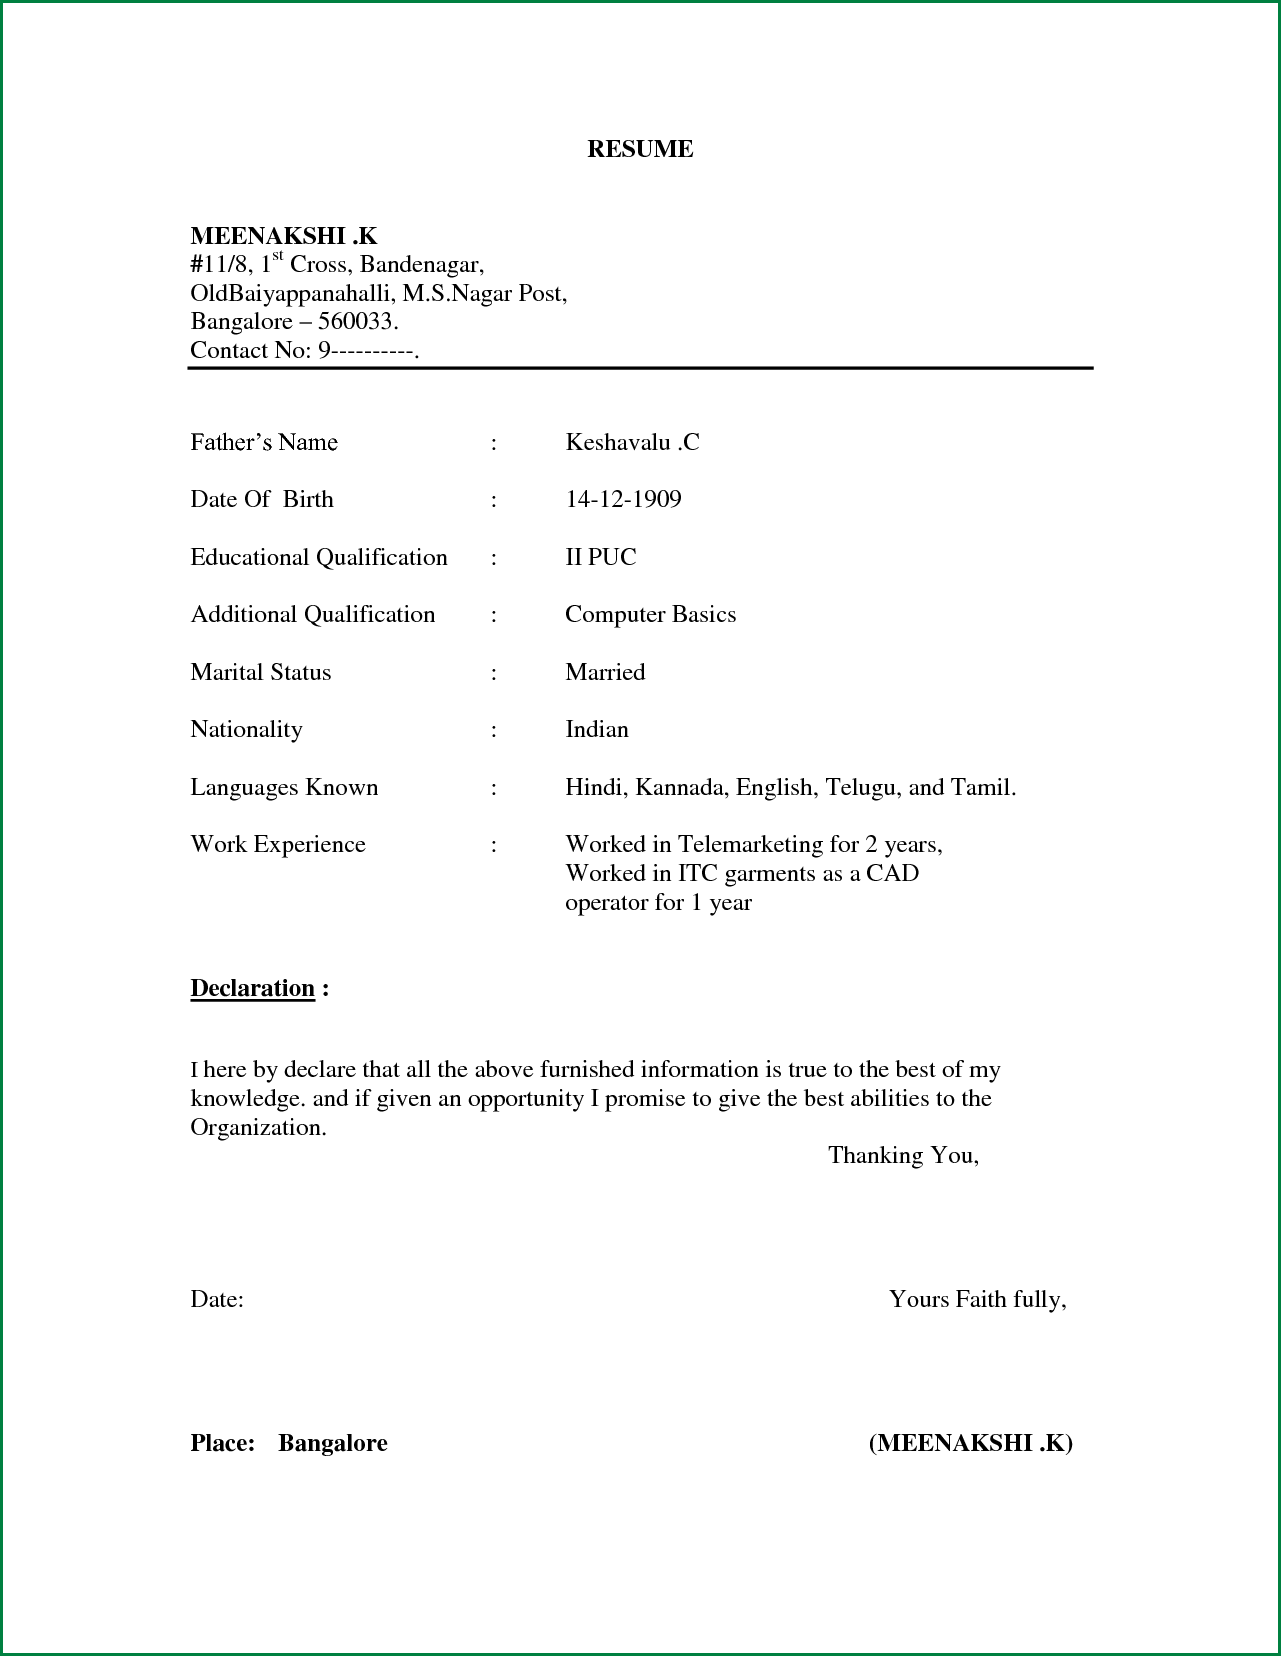 Sample Simple Resume Simple Resume Format For Freshers In Word File137085913